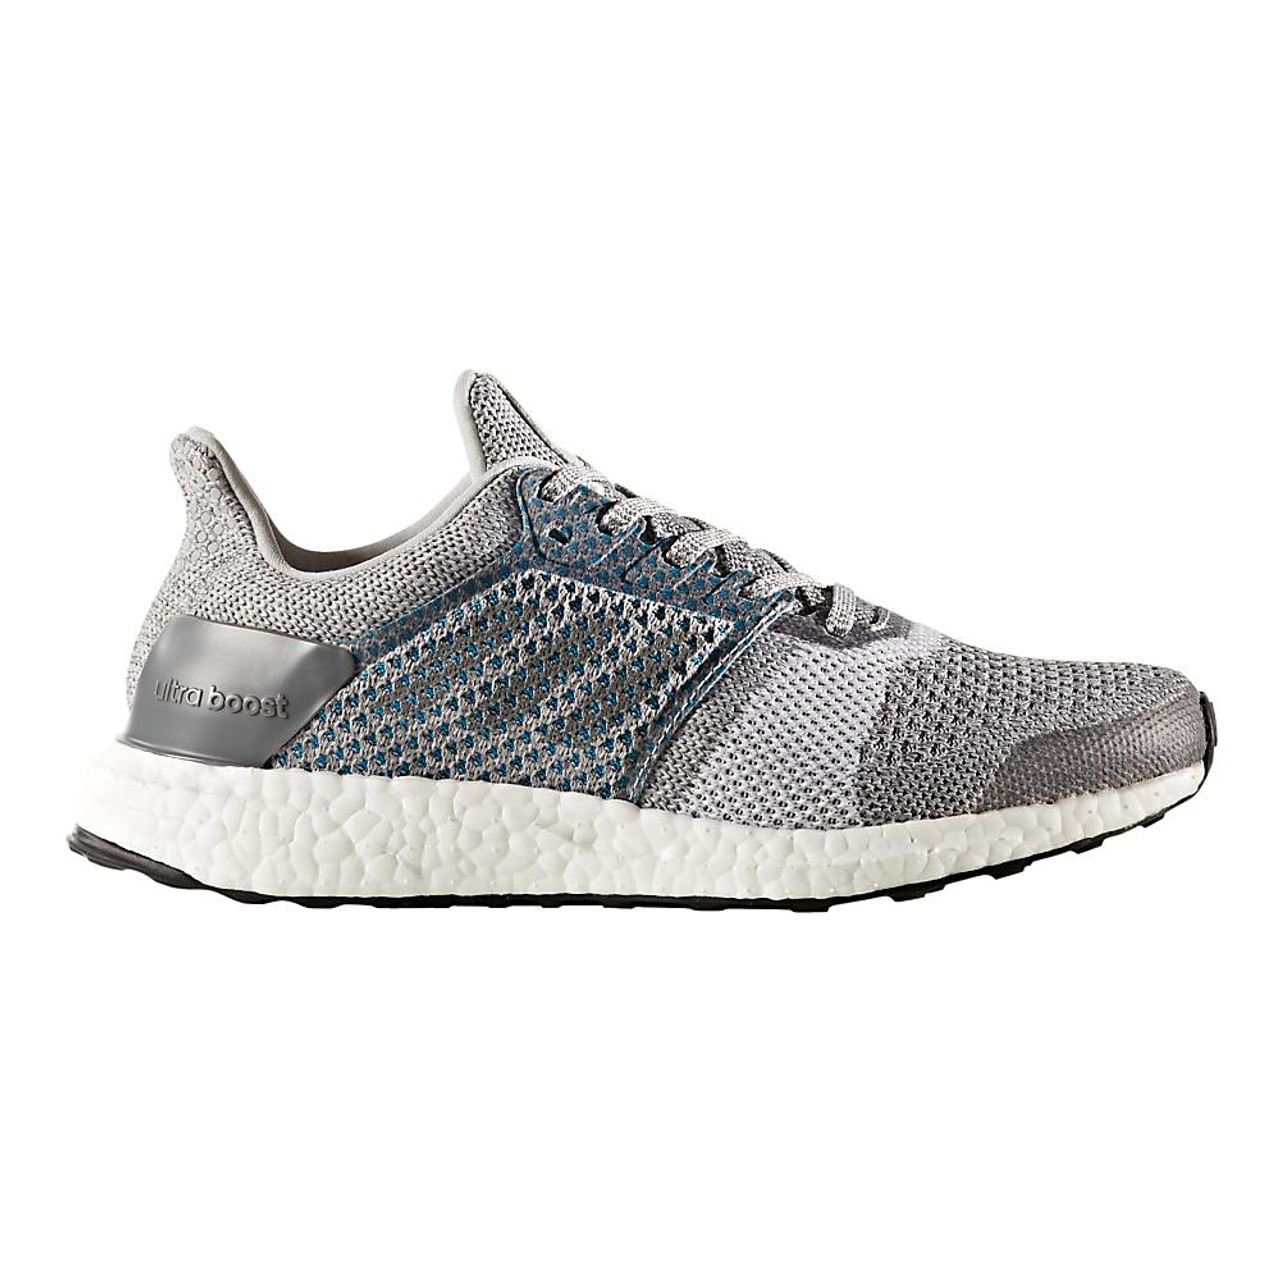 Intervenir nudo Integral  Women's adidas Ultra Boost ST Running Shoes| Free 3-Day Shipping